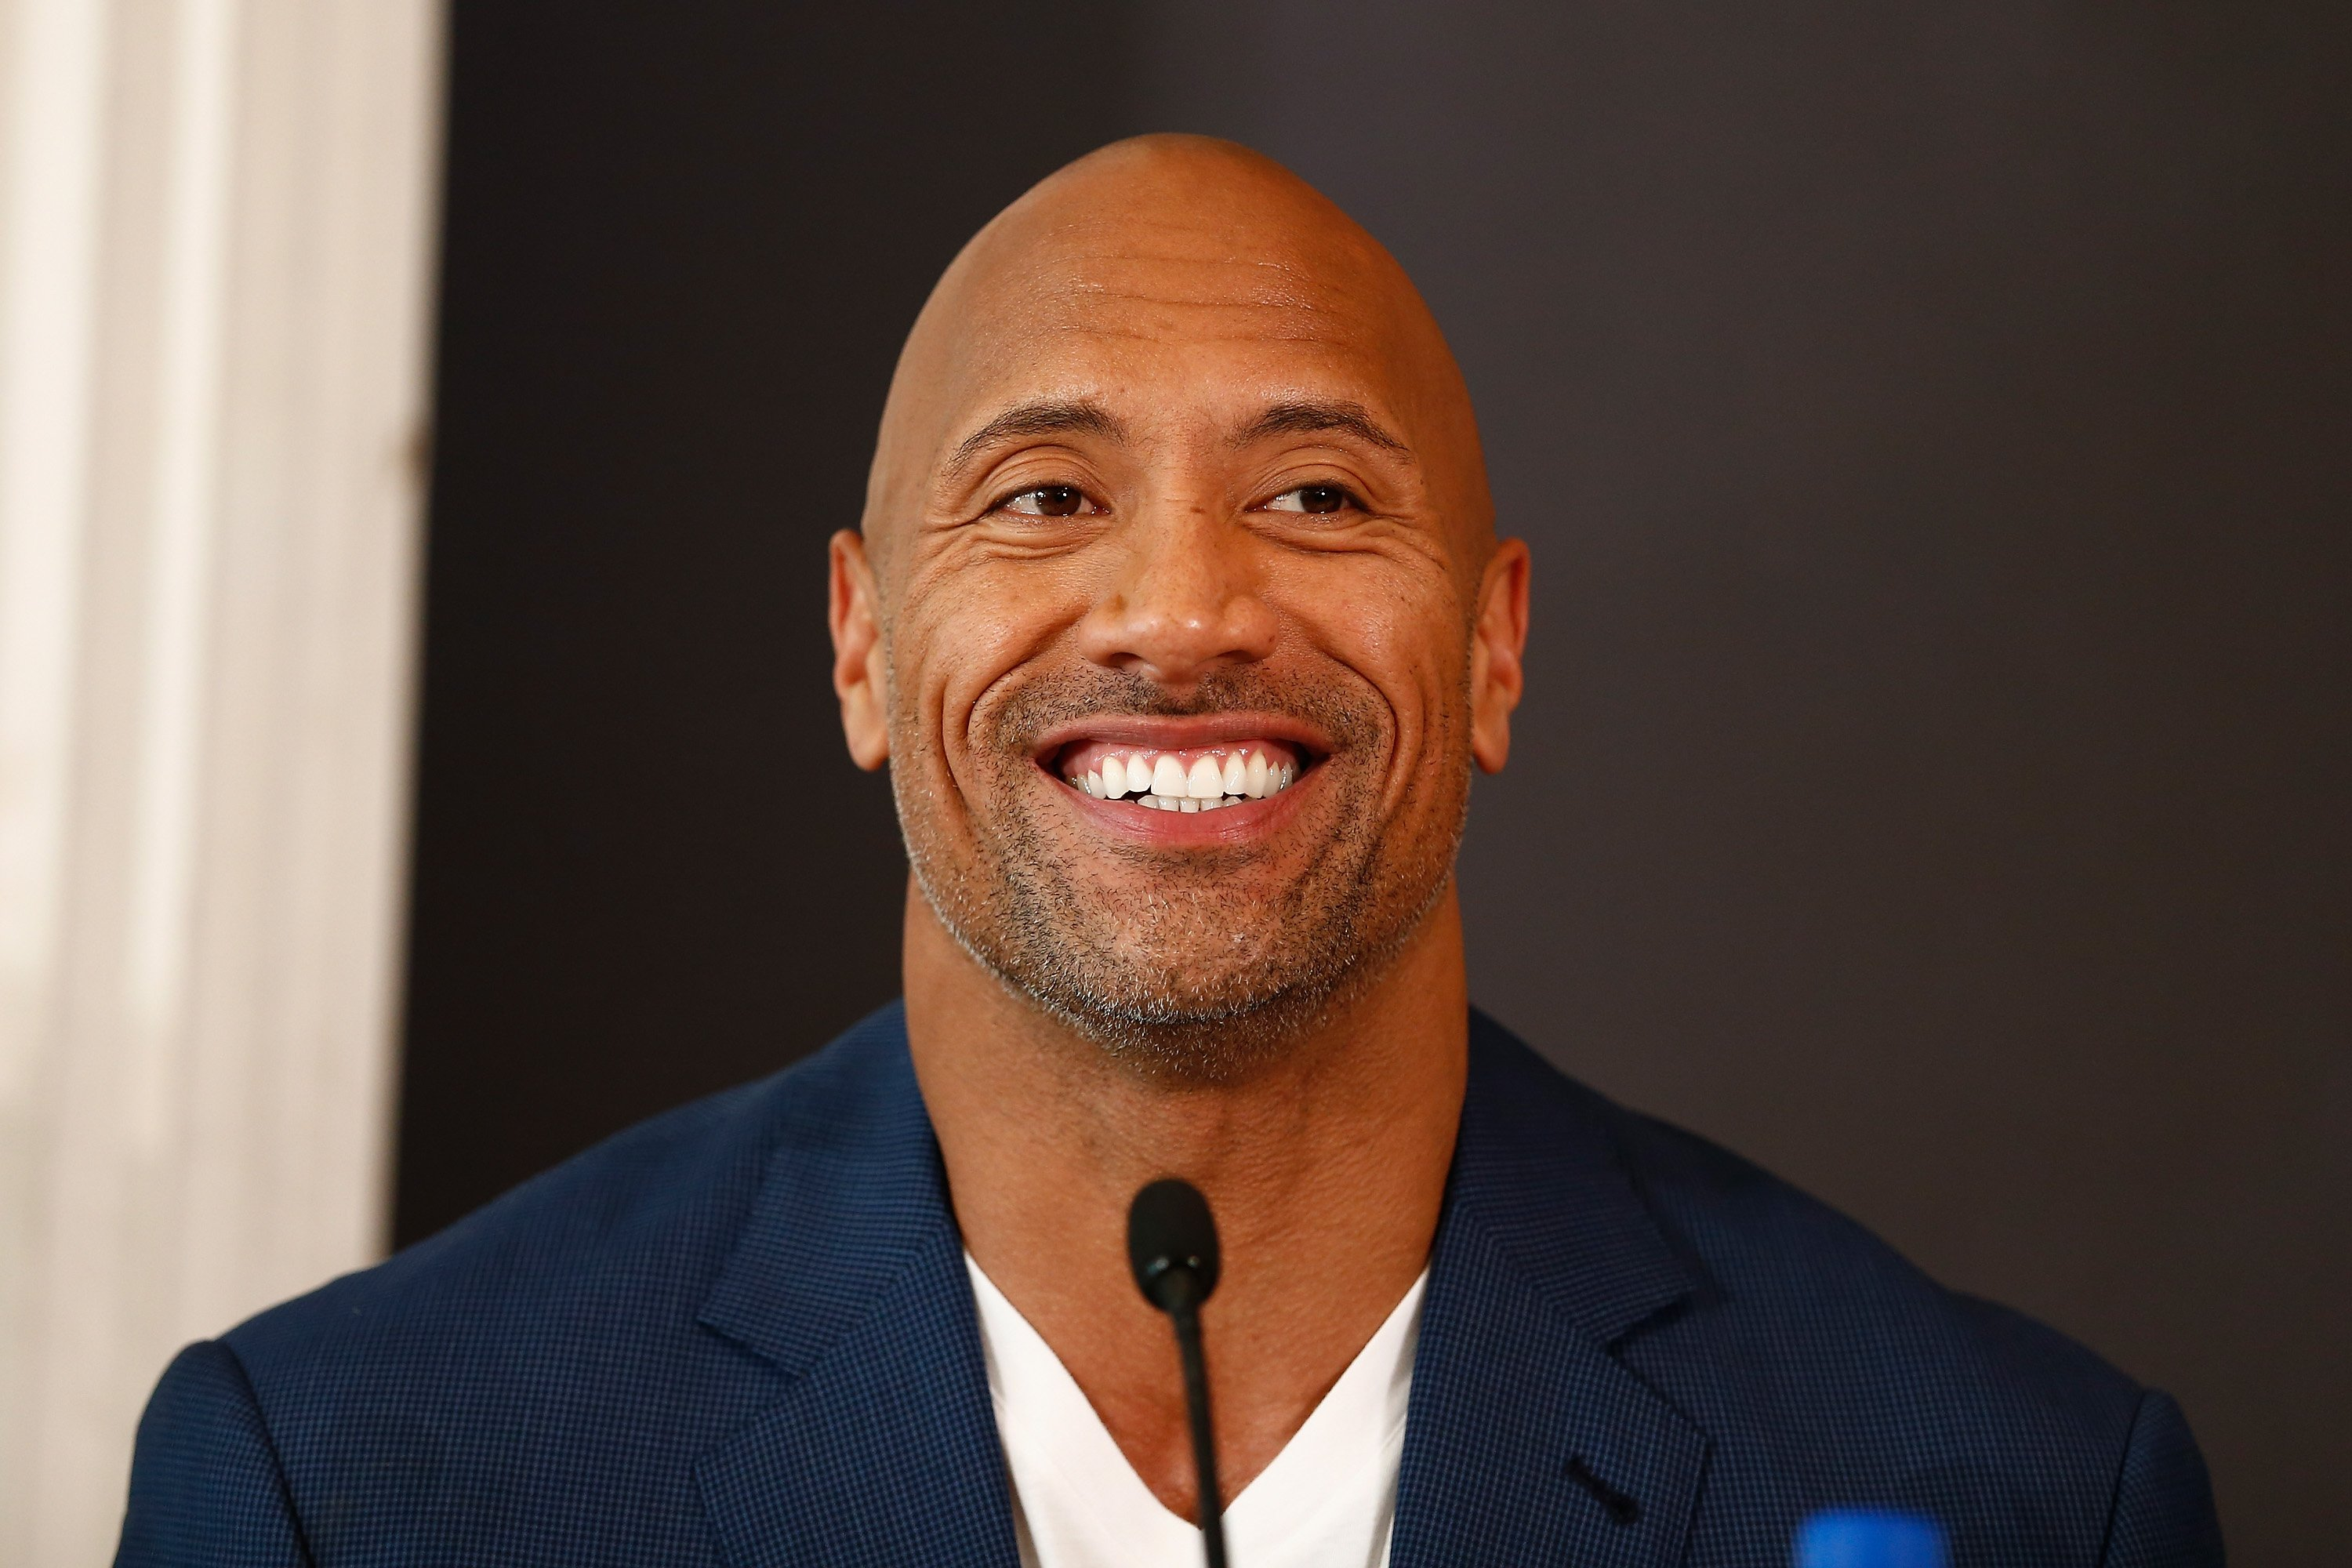 """Dwayne Johnson pictured at the press conference of Paramount Pictures """"HERCULES,"""" 204, Berlin, Germany.   Photo: Getty Images"""